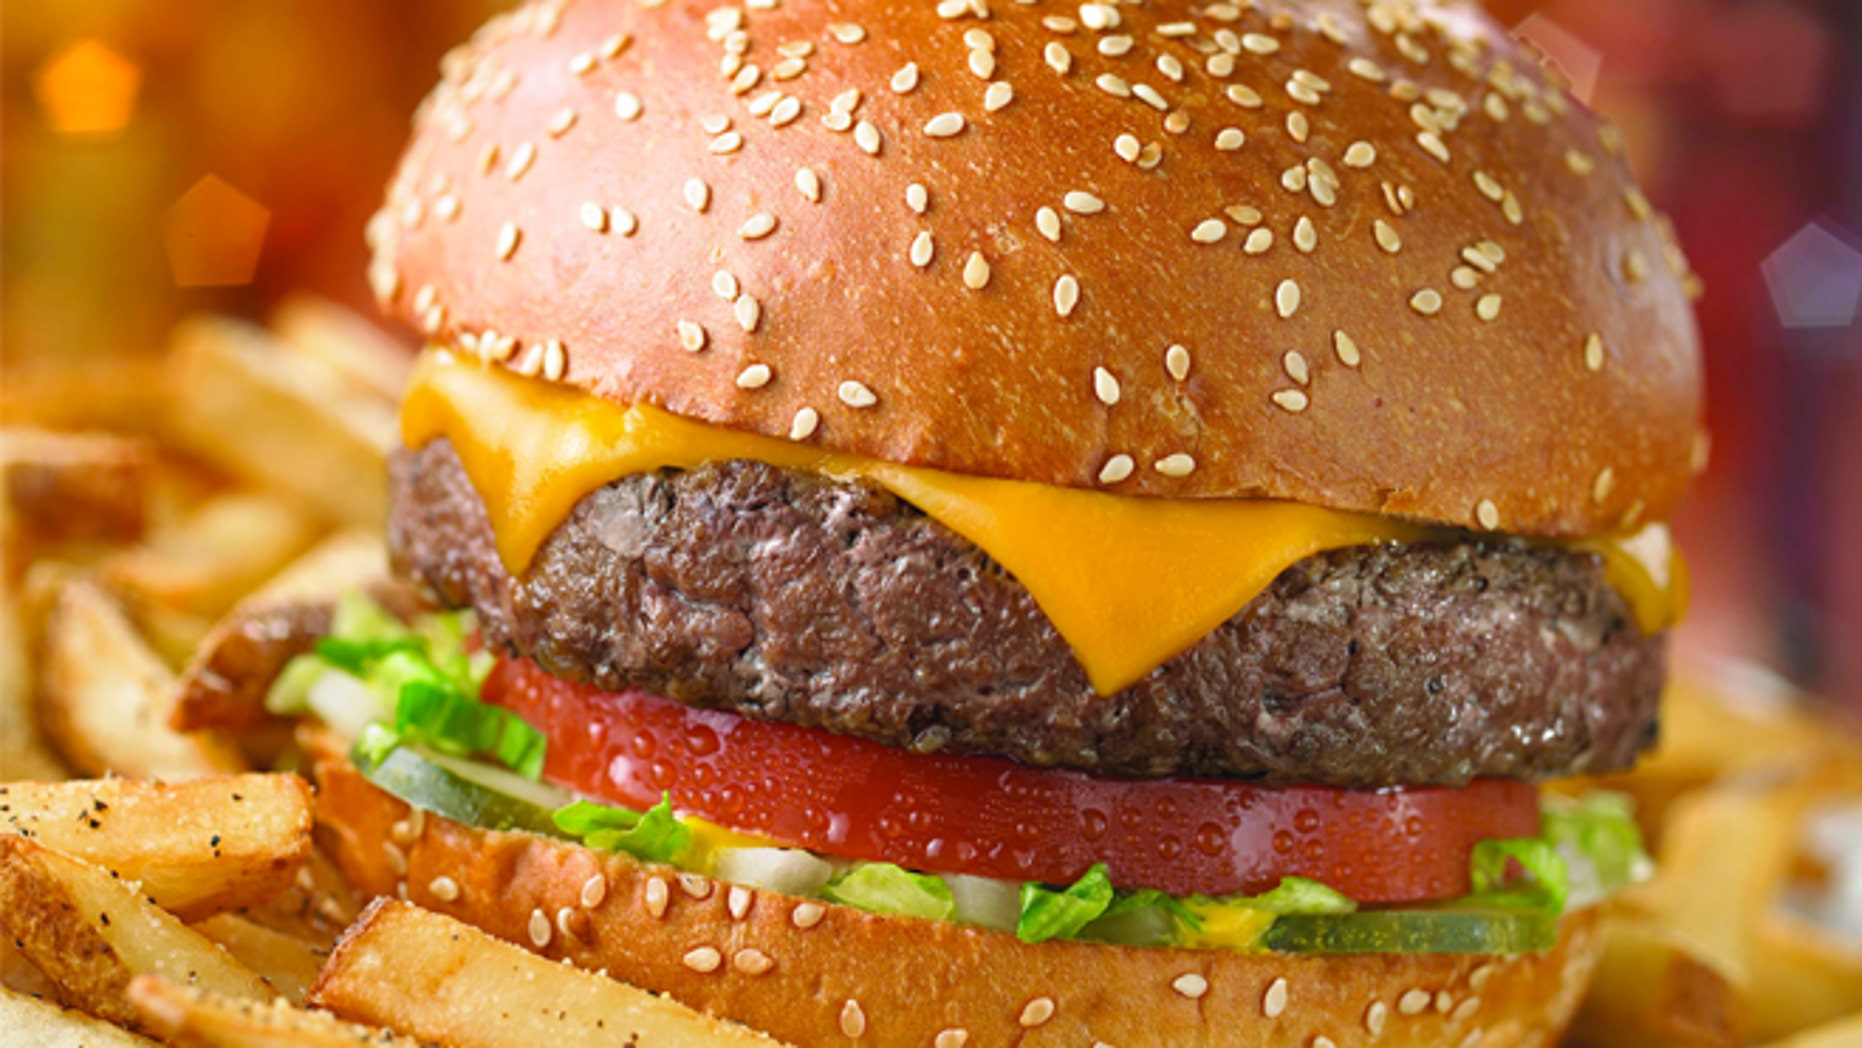 """A Chili's restaurant in Utah won praise for fixing a """"broken cheeseburger"""" for an upset autistic girl."""